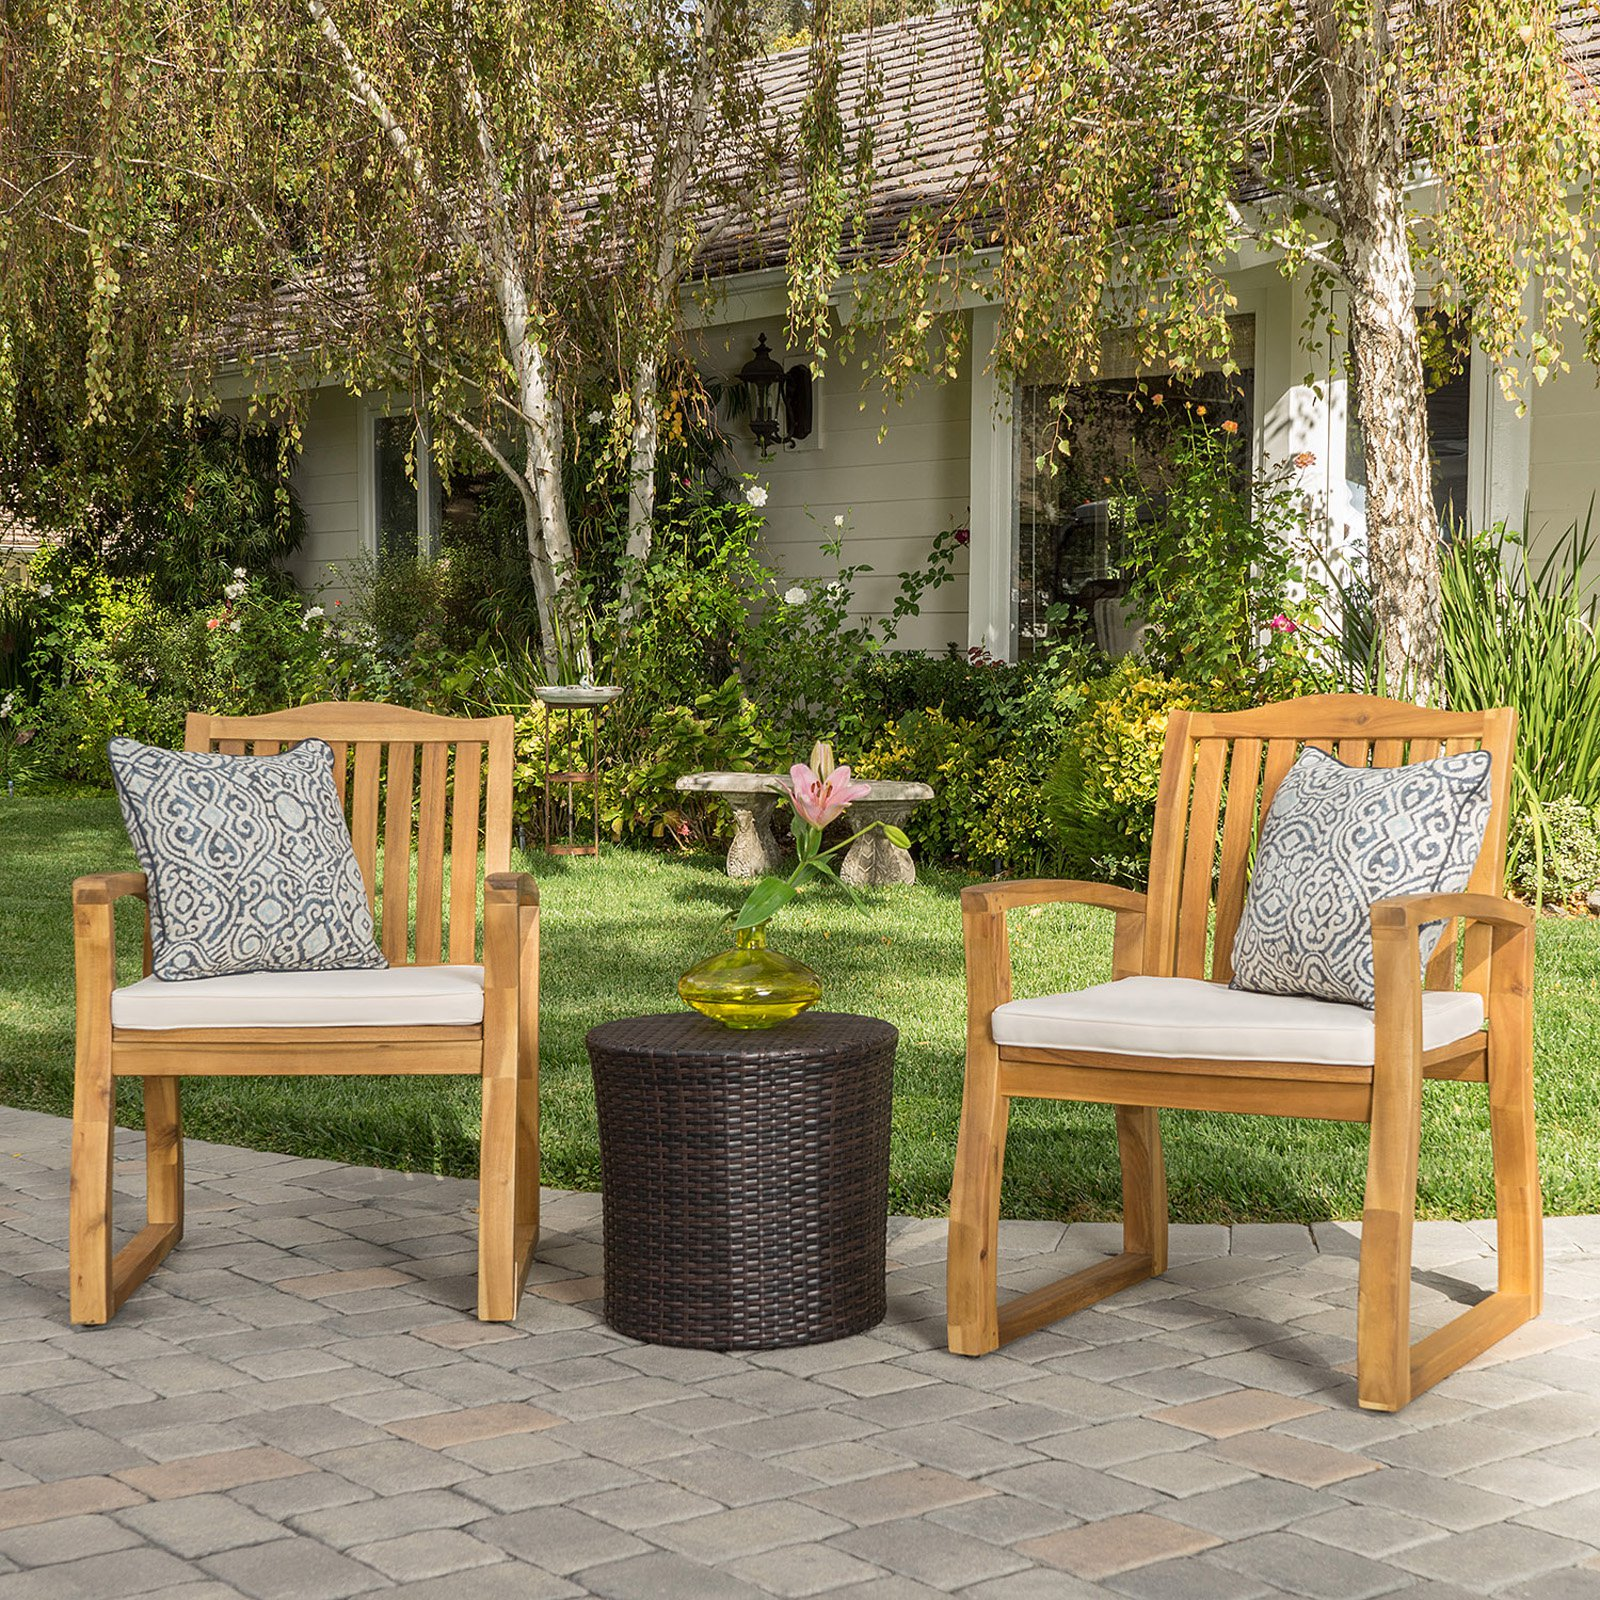 Best Selling Home Sharps 3 Piece Patio Chat Set